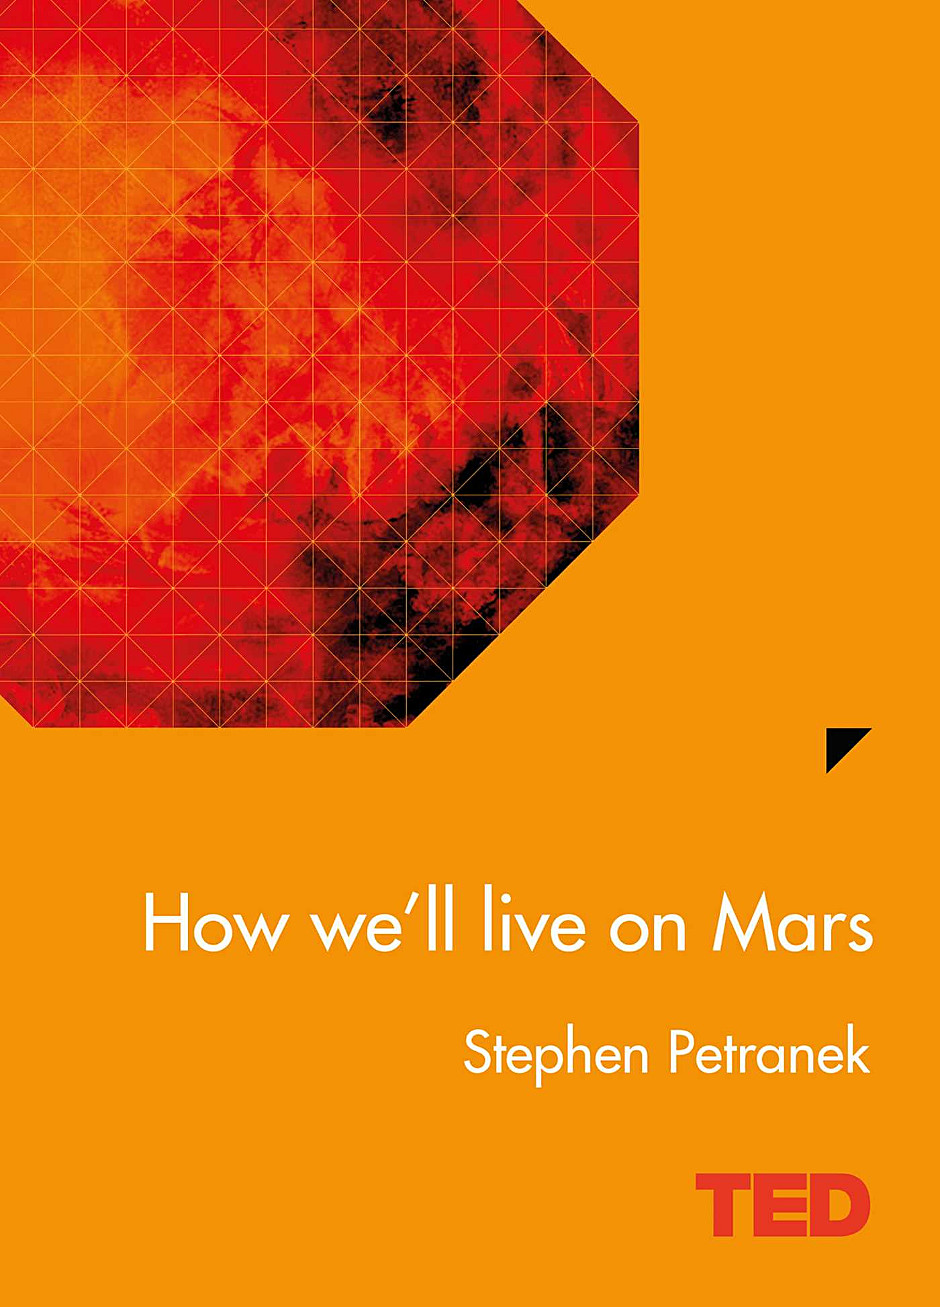 How-we-will-live-on-Mars_940x1307